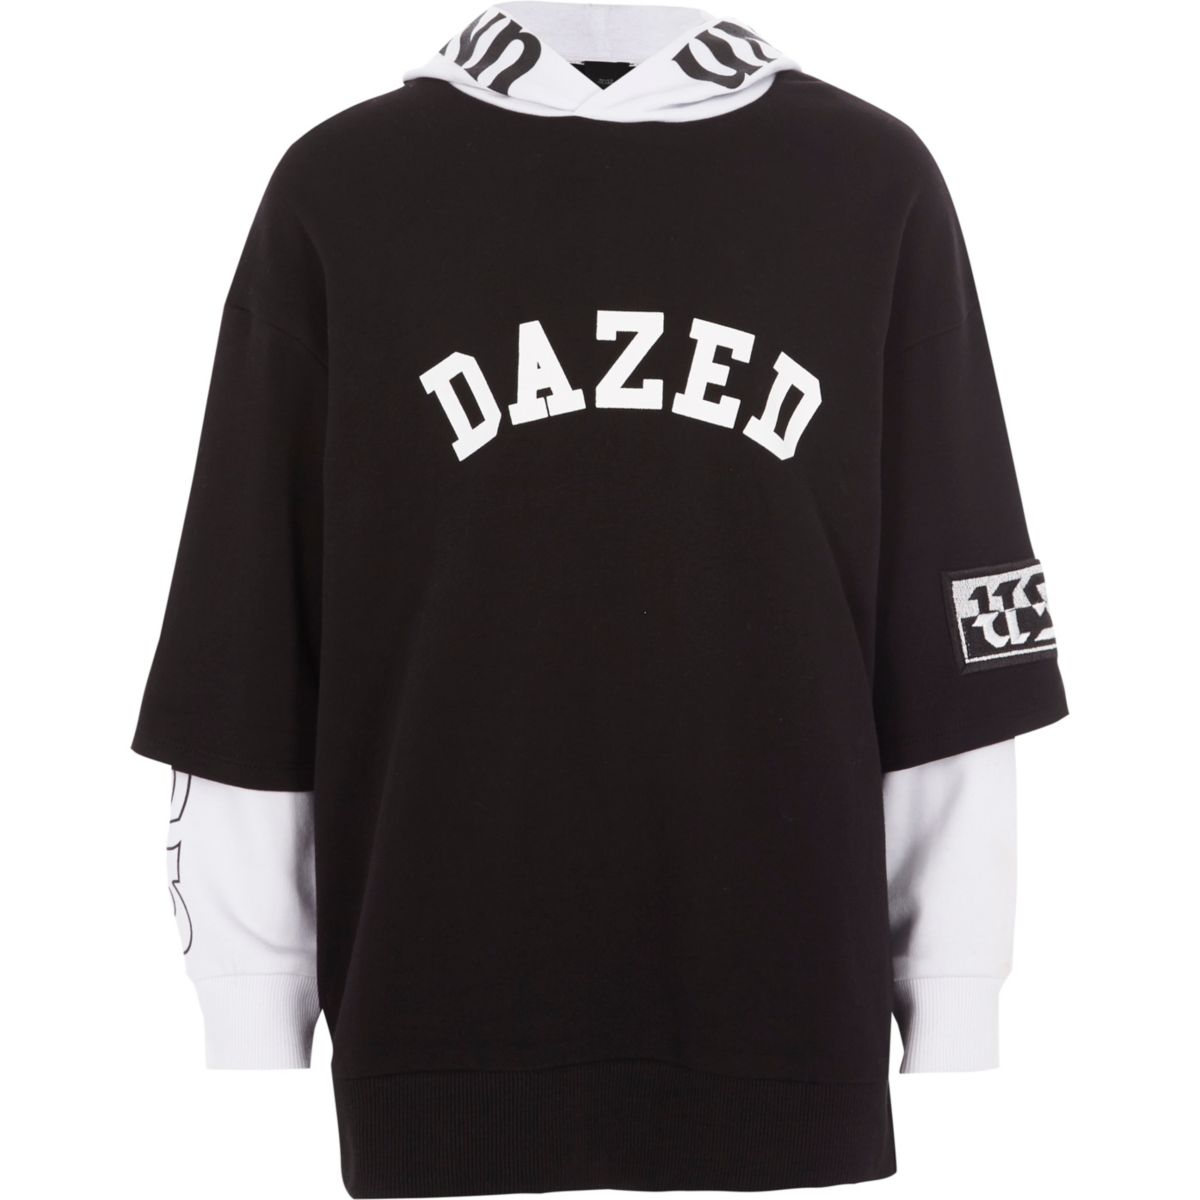 Boys black 'dazed' T-shirt contrast hoodie